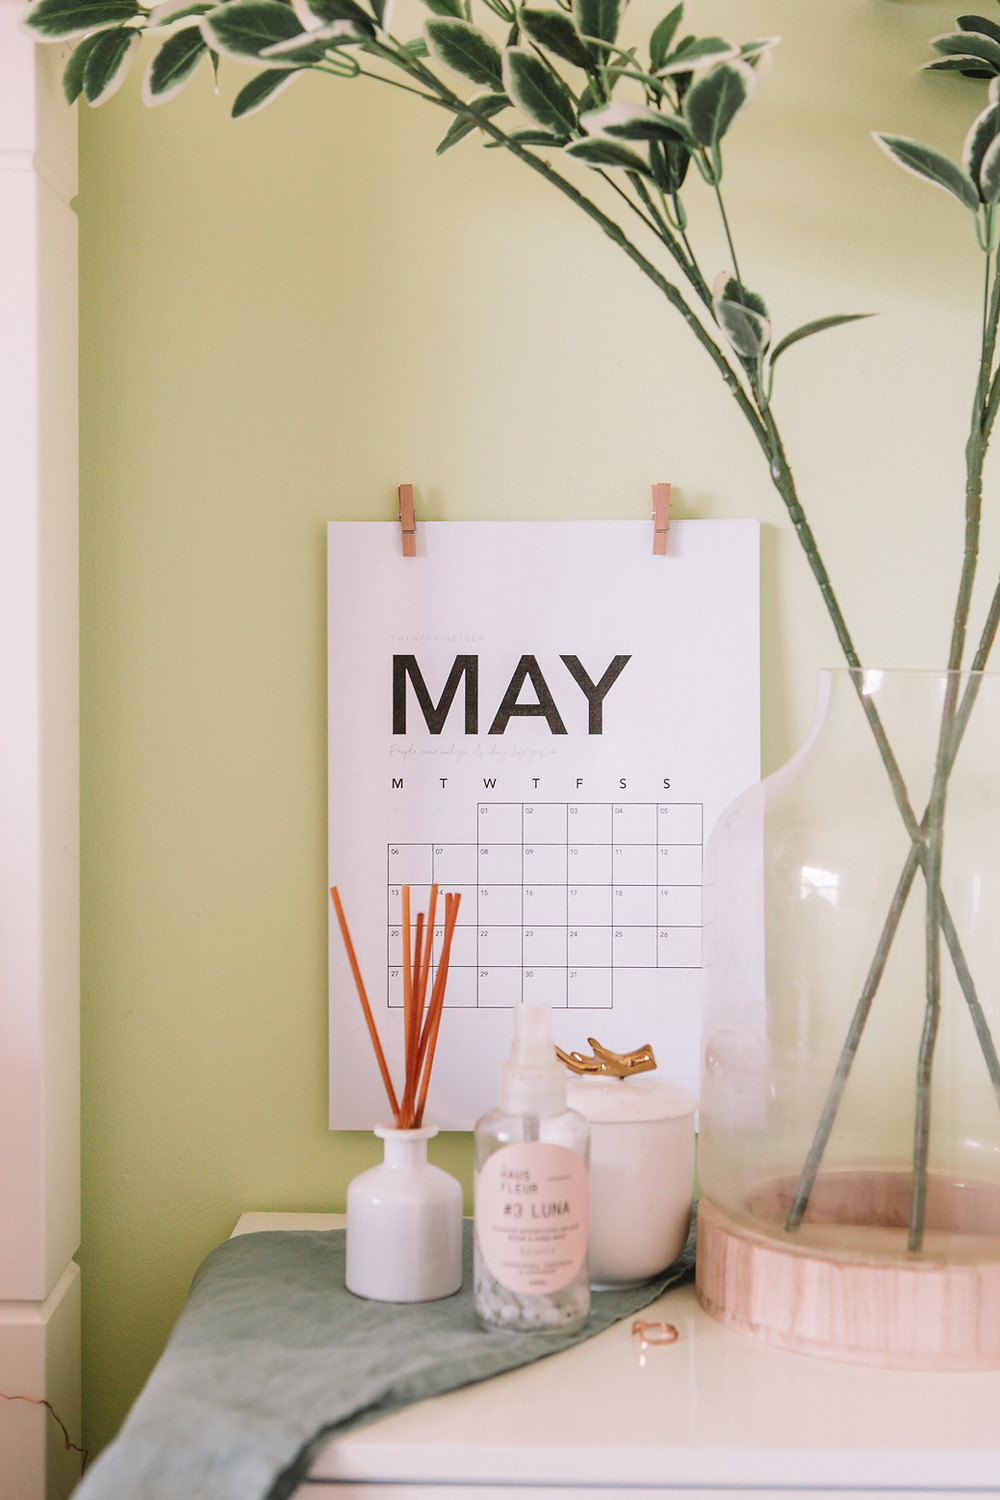 Wall calendar showing the month of May with some decorative candles and plants